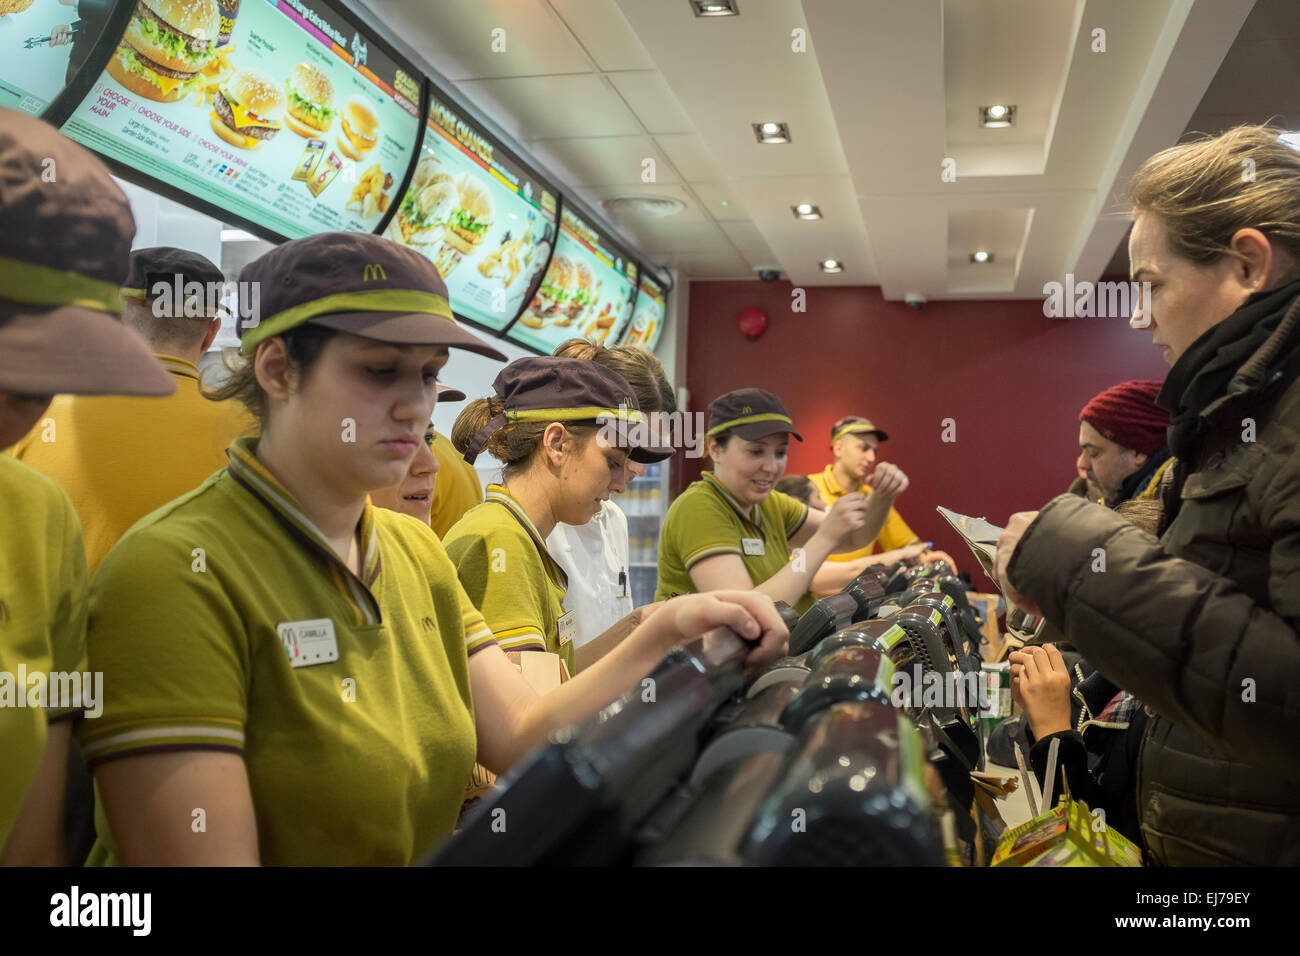 A Branch of McDonald's - Stock Image